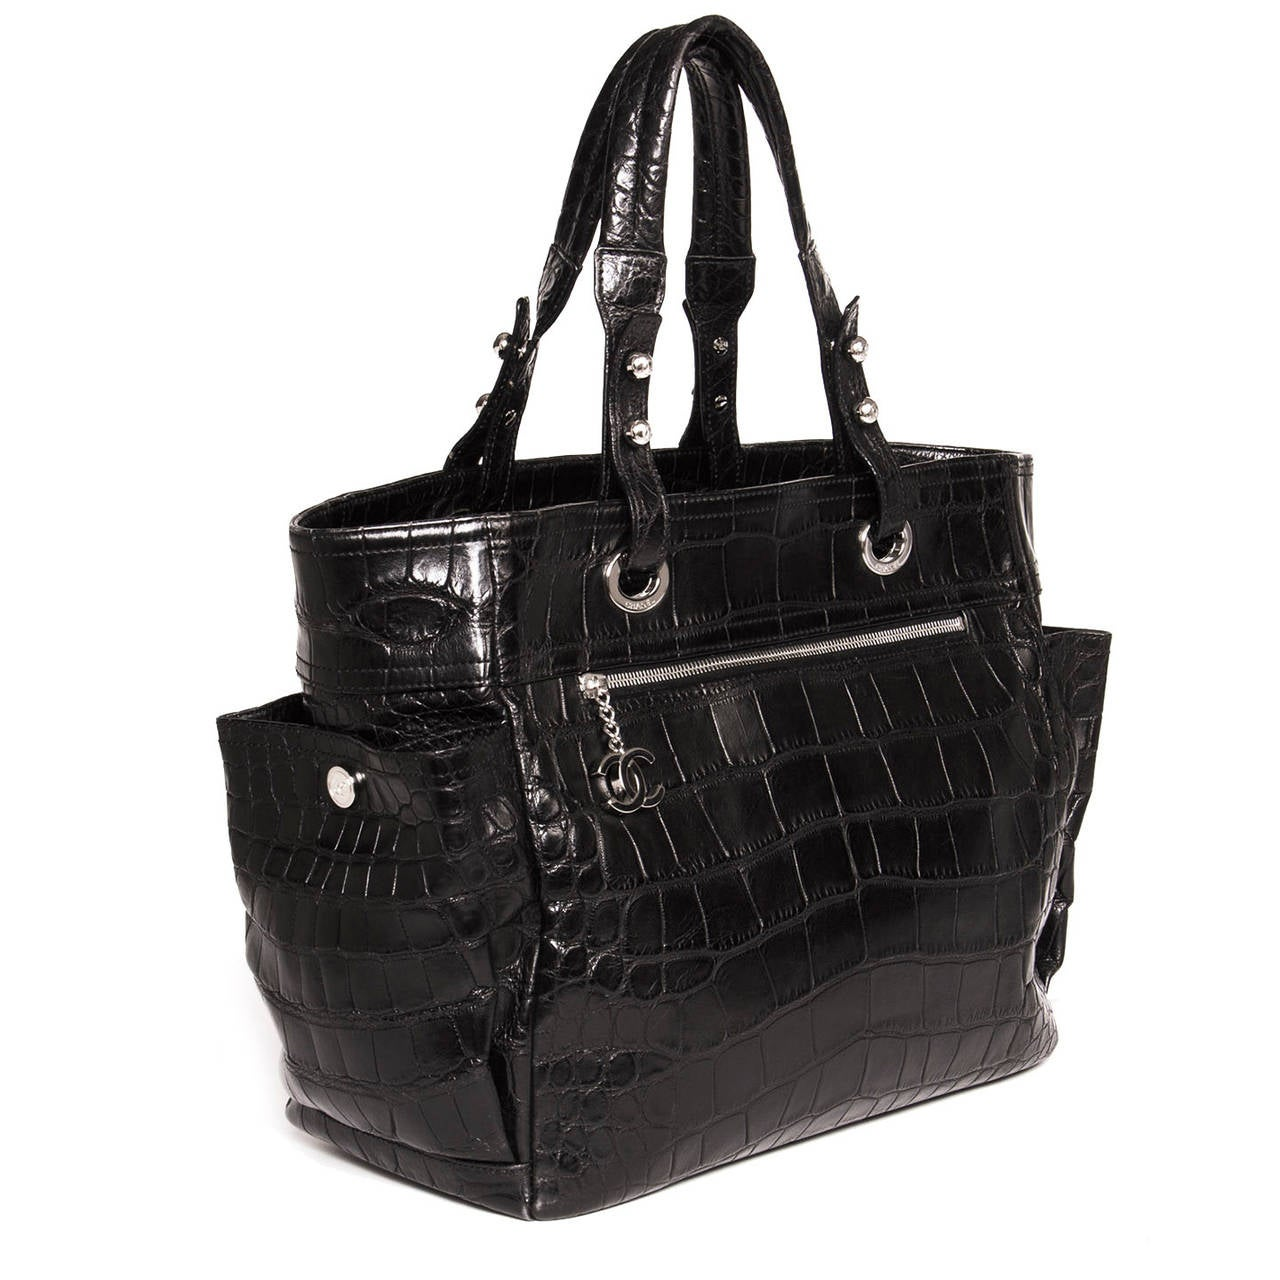 Alligator and Crocodile Bags. Related Categories. Auction Alerts. Crocodilian leather is perhaps the most popular natural material for vintage purses and handbags. The earliest Crocodilian fossils can be traced back to 80 million years ago, when dinosaurs still roamed the earth. Today the order encompasses 23 species, including crocodiles.